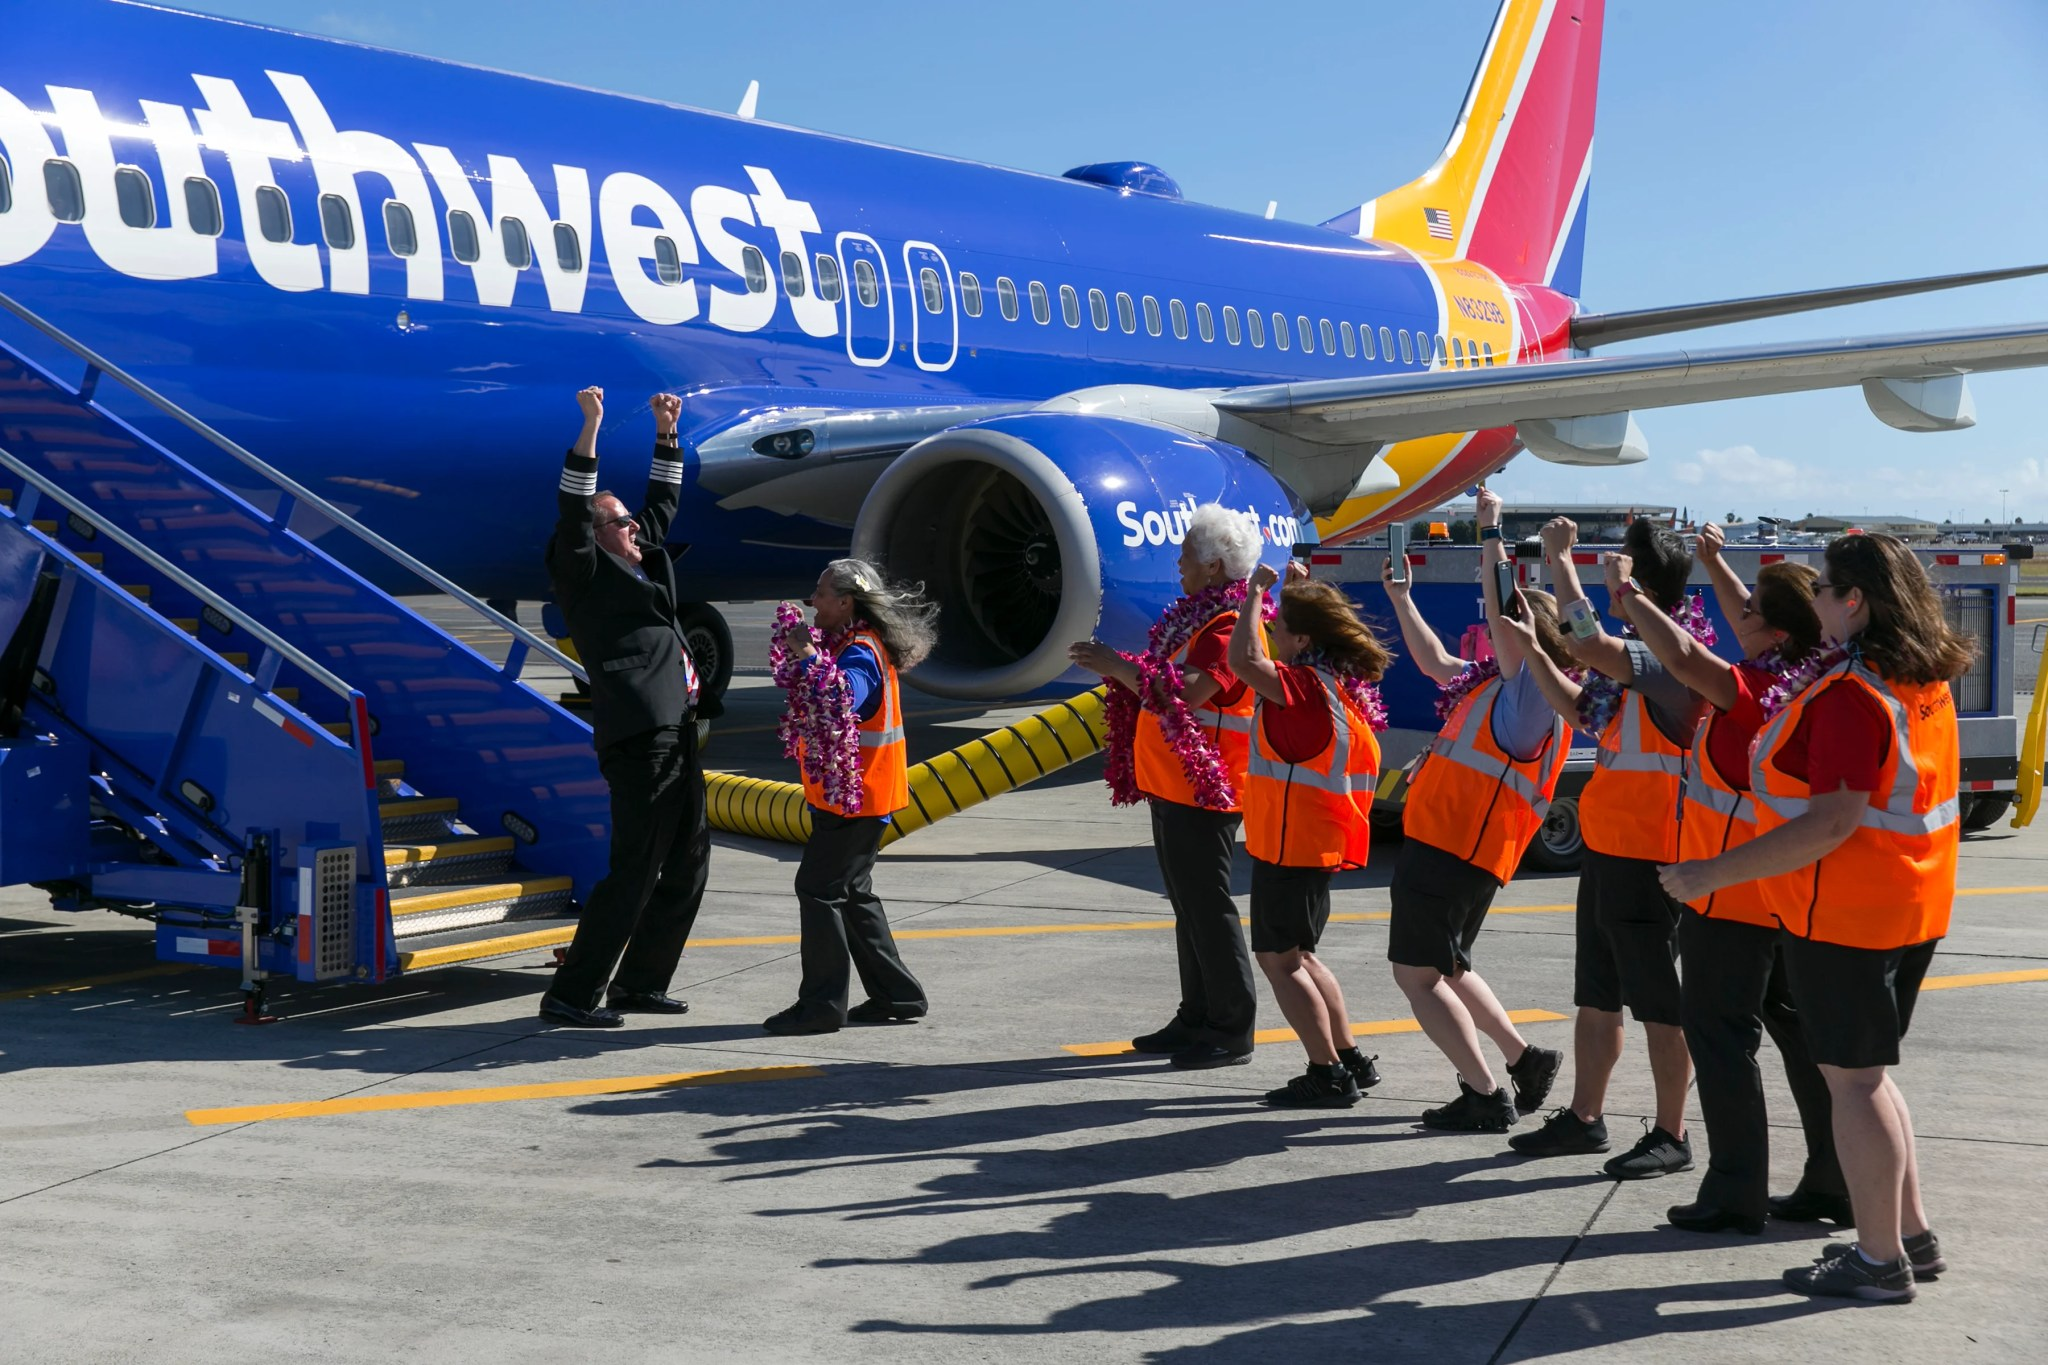 996fc8e764 Southwest Airlines crew celebrate their inaugural flight to Hawaii at the  Honolulu International Airport